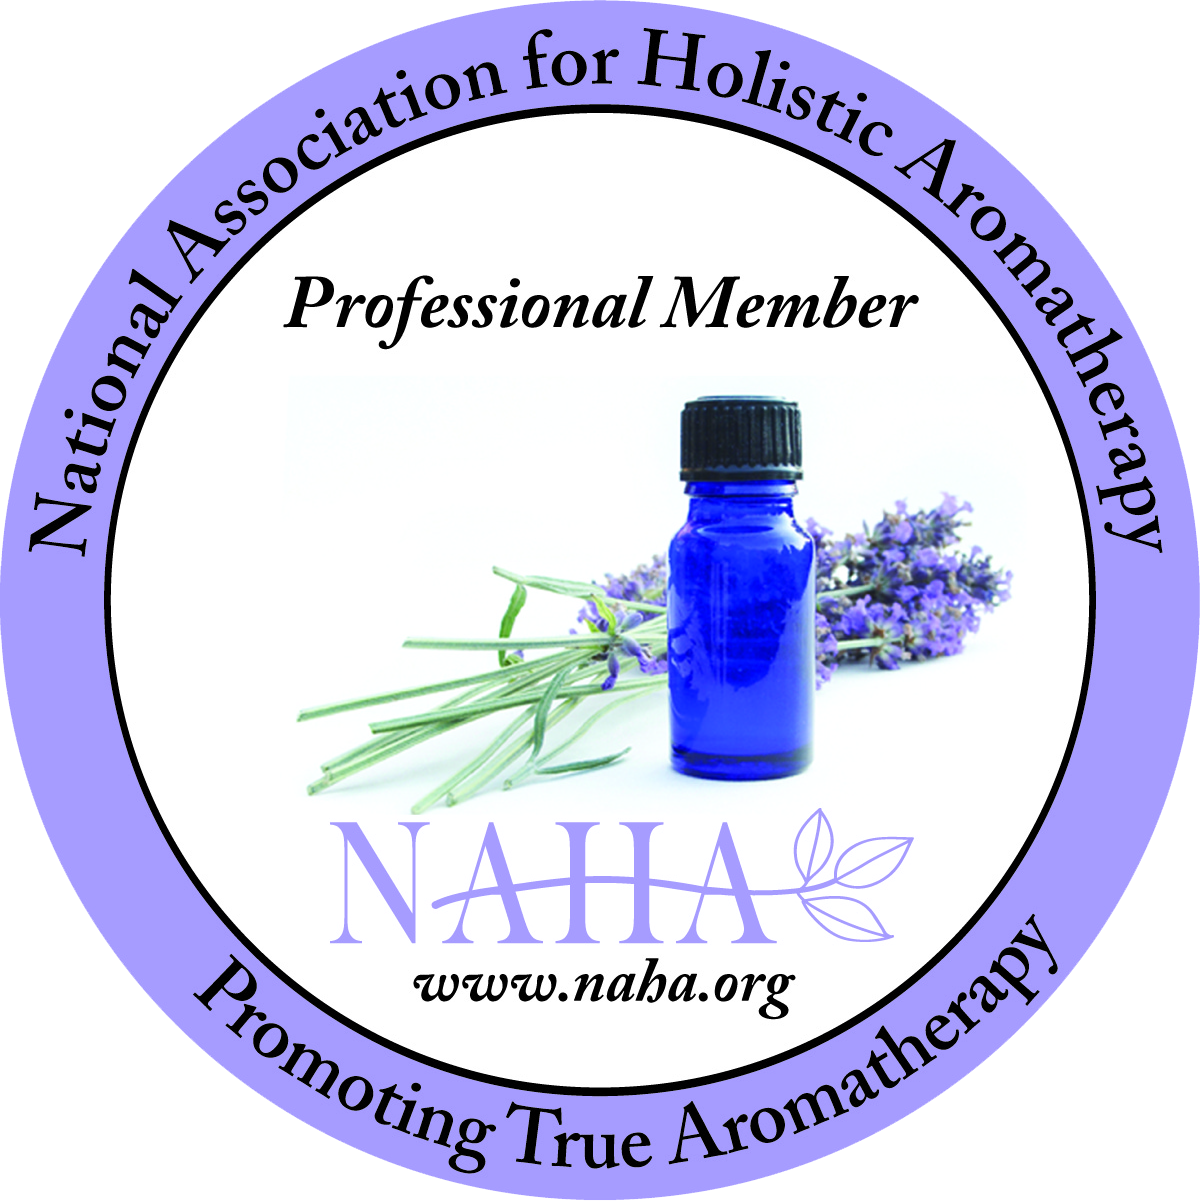 Natioal Association for Holistic Aromatherapy